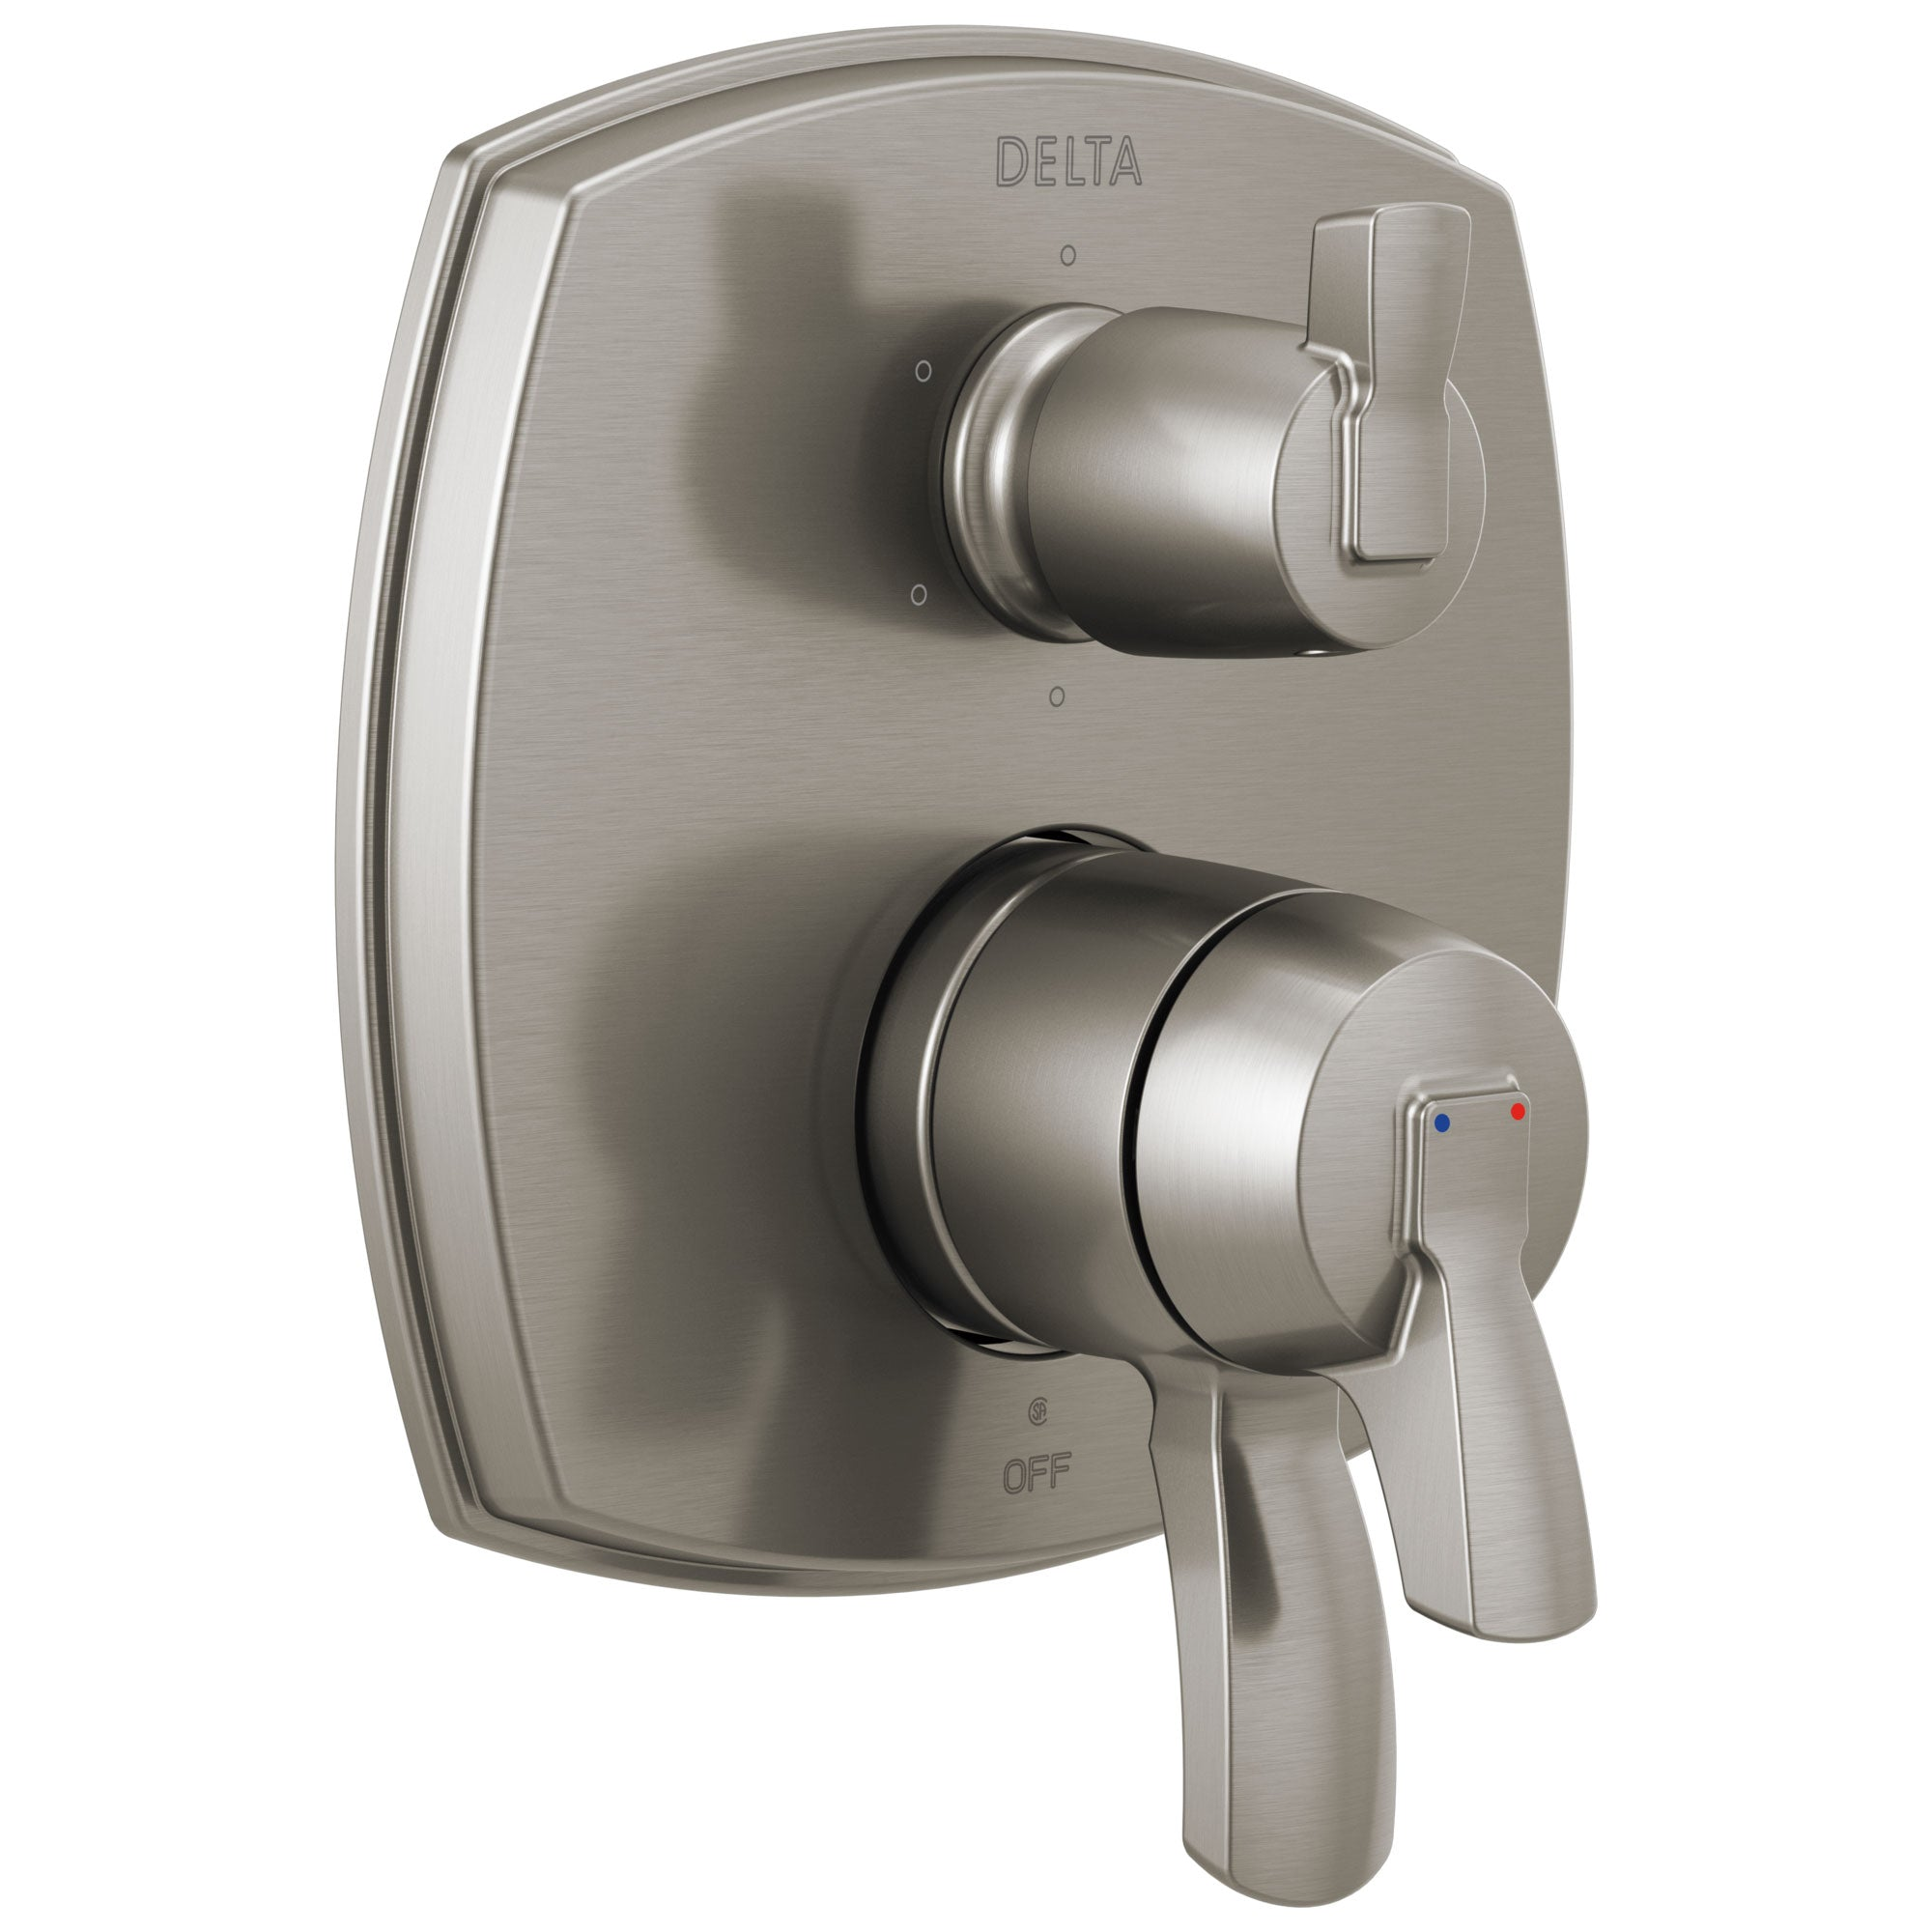 Delta Stryke Stainless Steel Finish 6 Function Lever Handle Integrated Diverter 17 Series Shower System Control Includes Valve and Handles D3119V